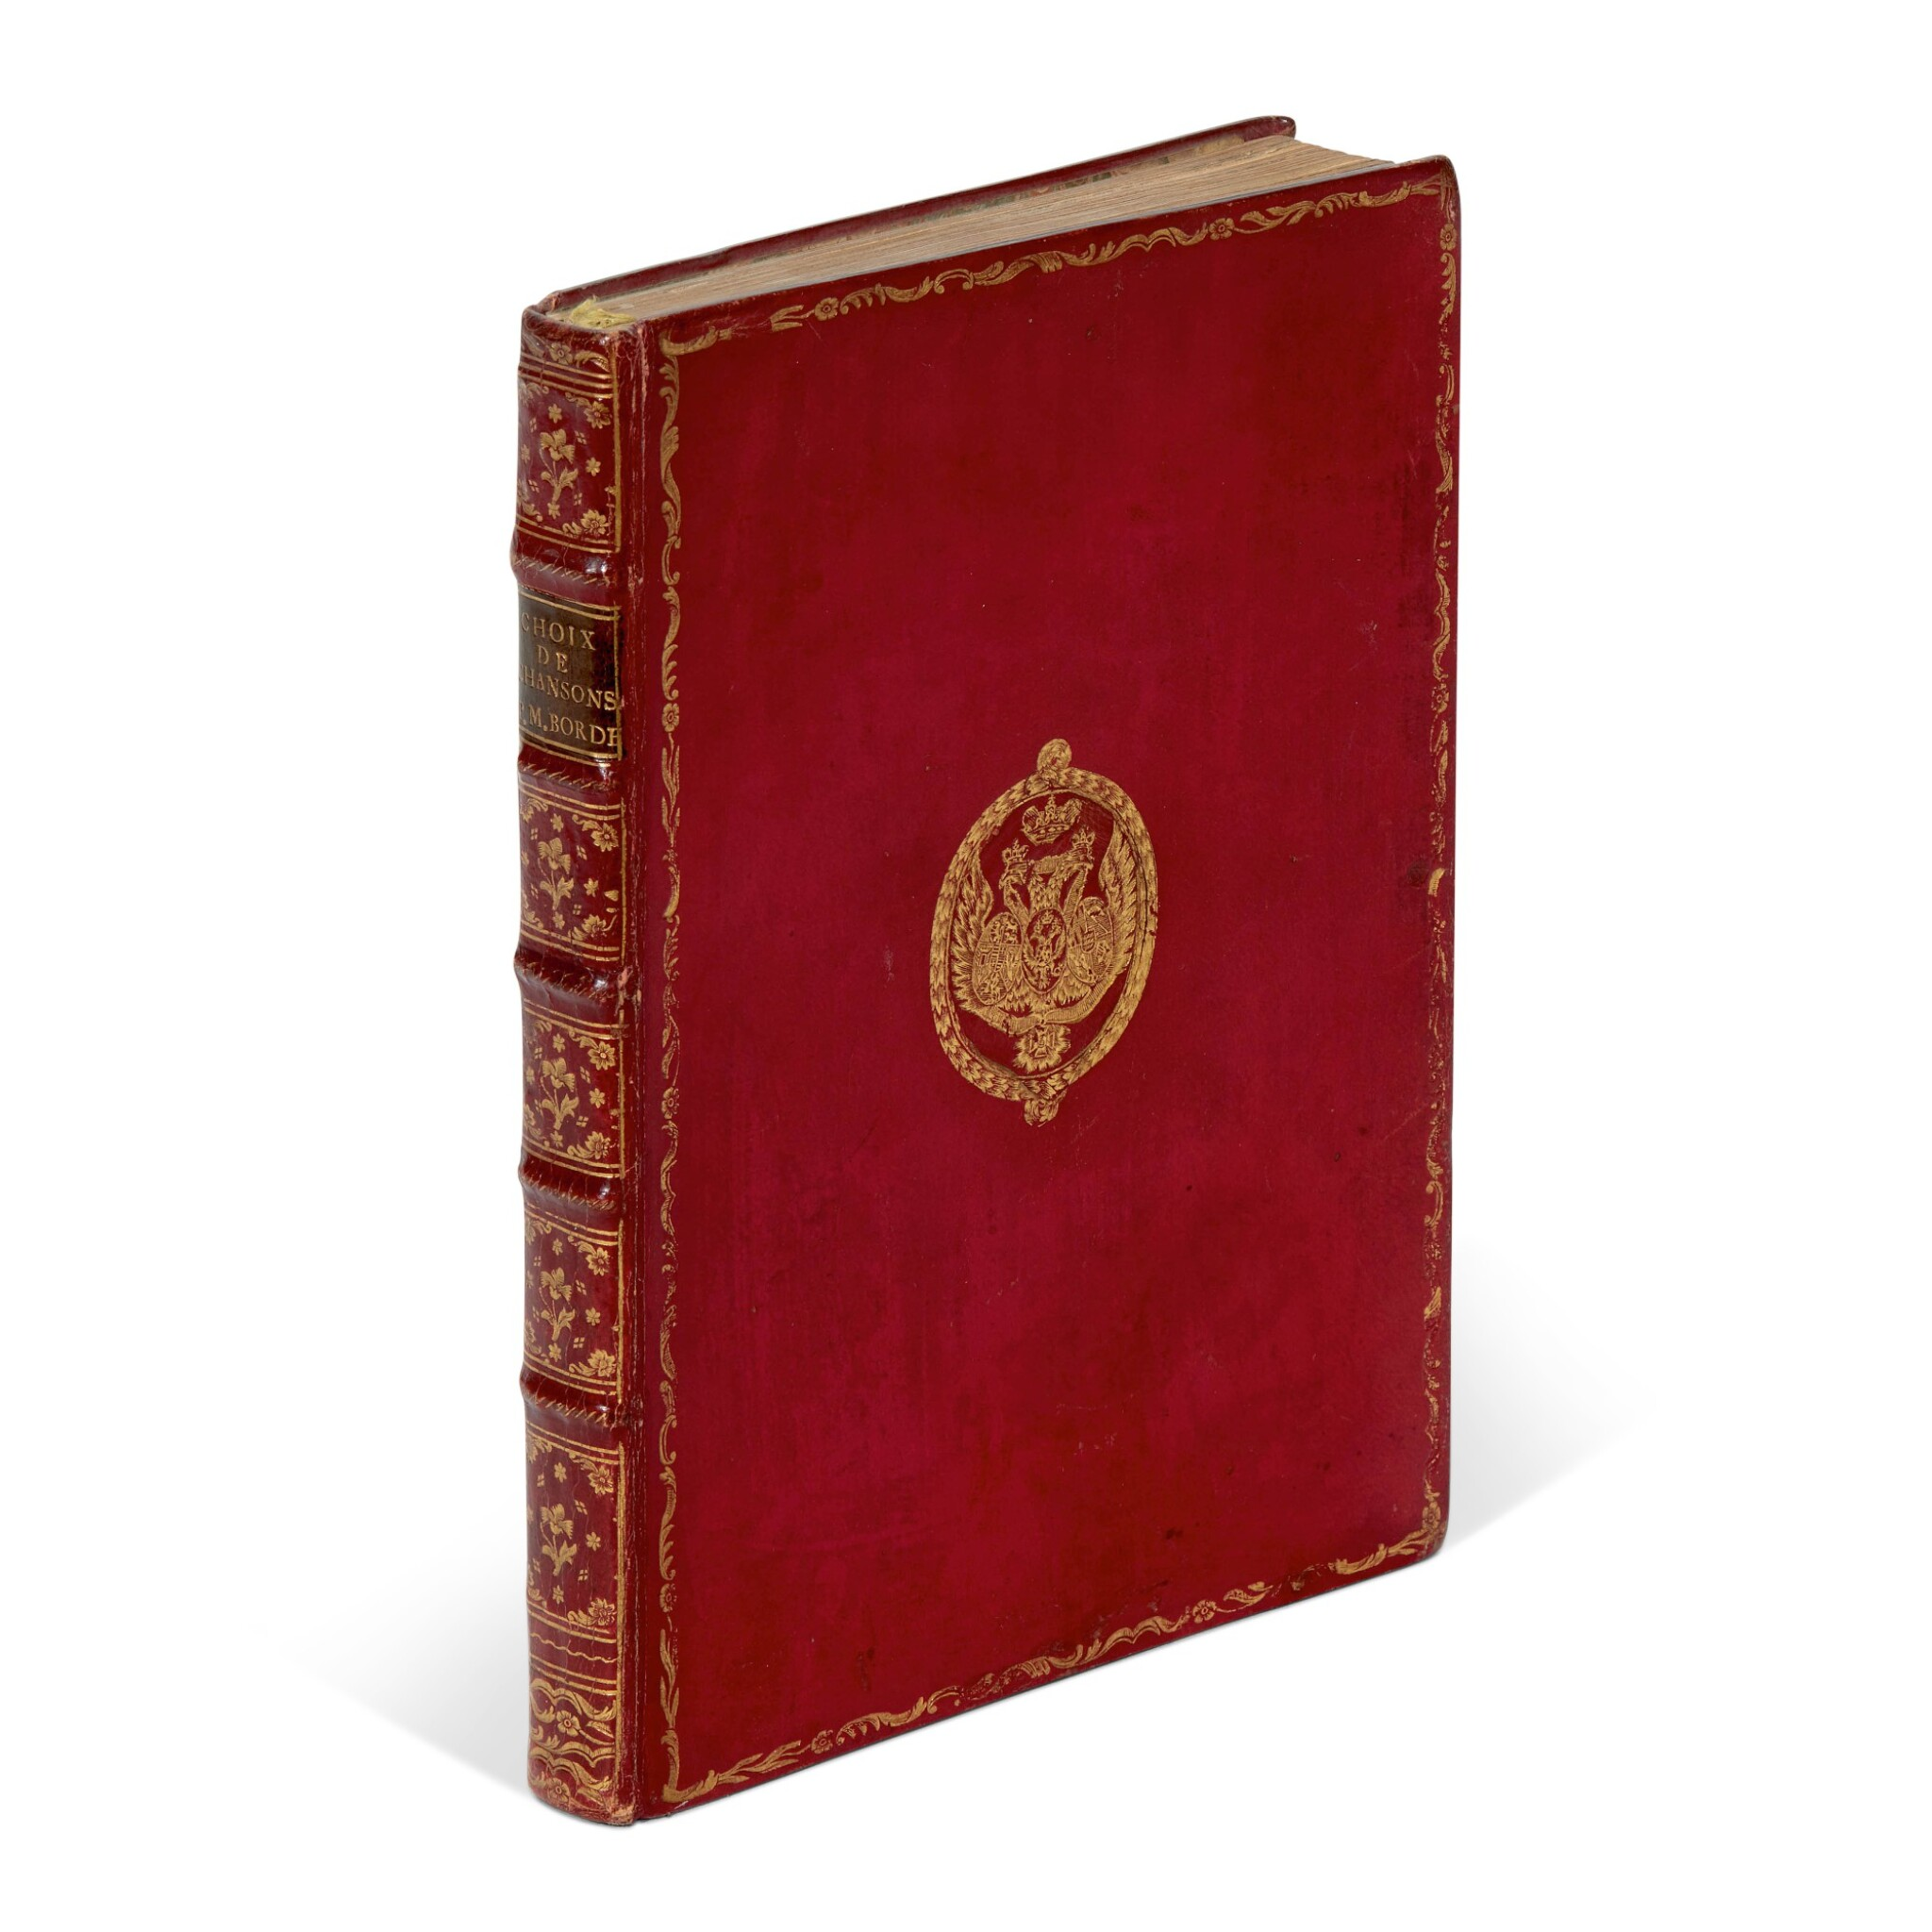 View full screen - View 1 of Lot 159. Laborde, Choix de chansons, Paris, 1773, red morocco with arms of Tsar Paul I.